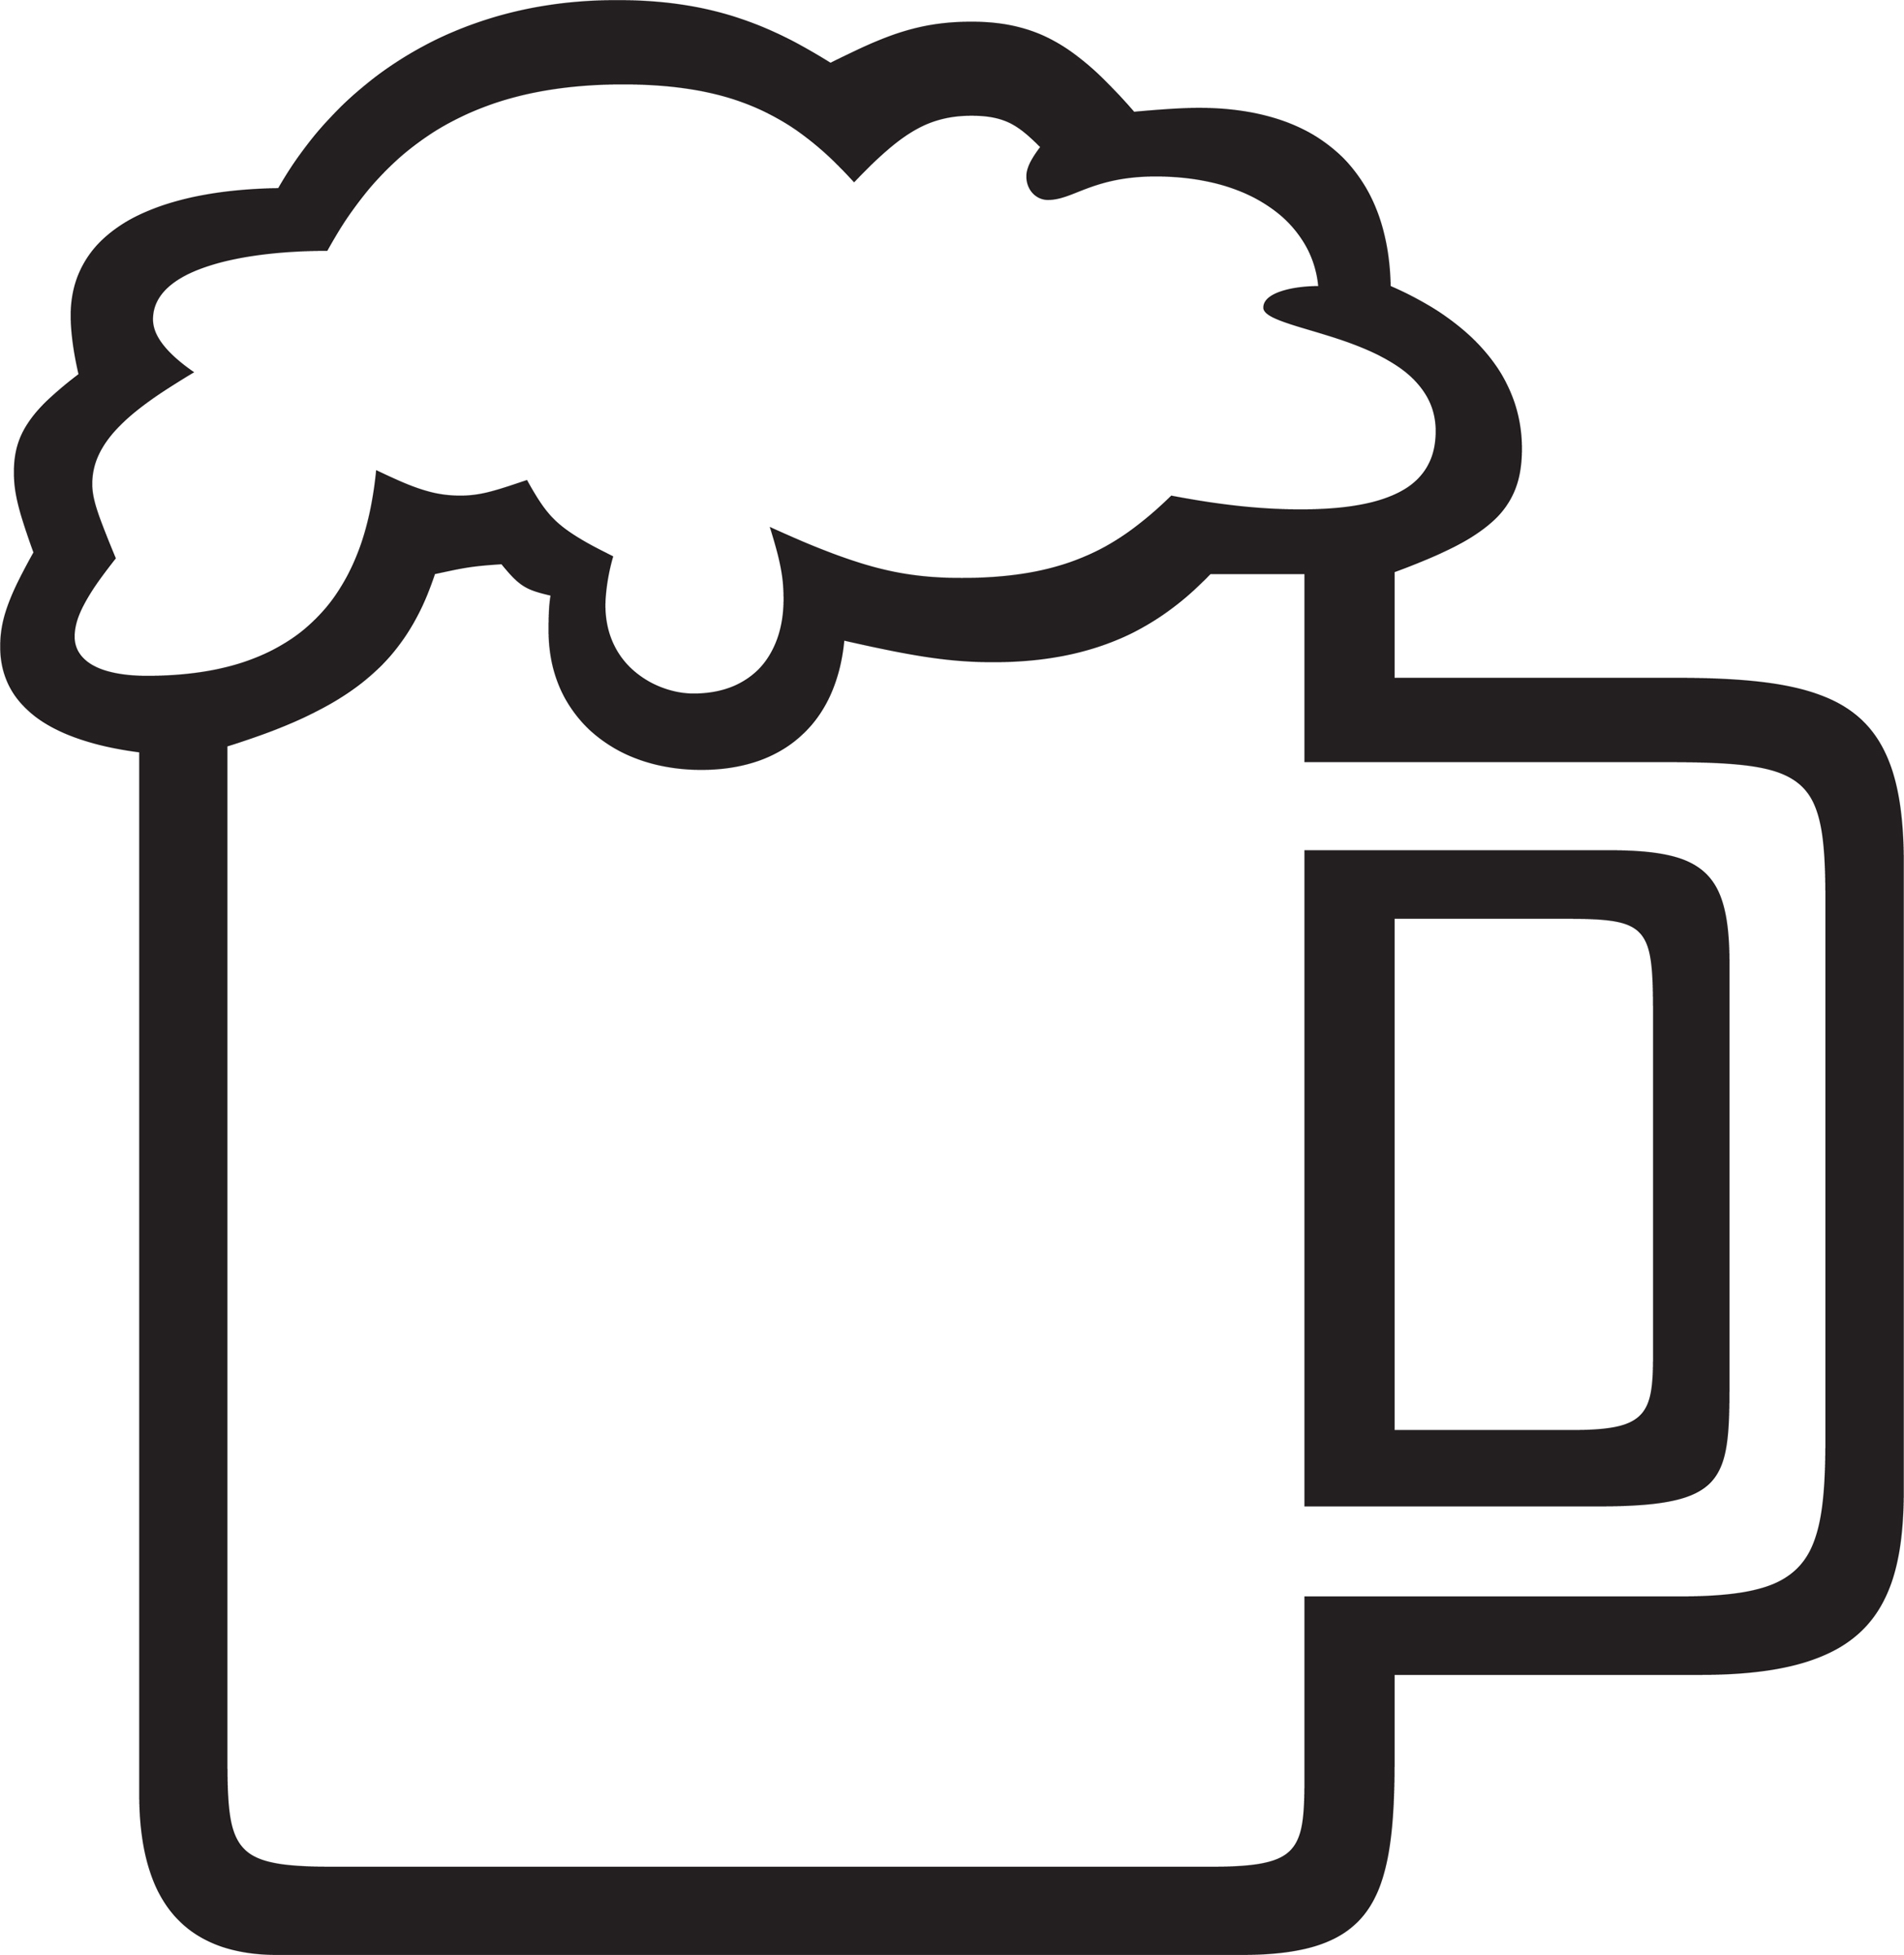 Clipart beer mug free graphic royalty free Beer mug black and white clipart kid - Cliparting.com graphic royalty free